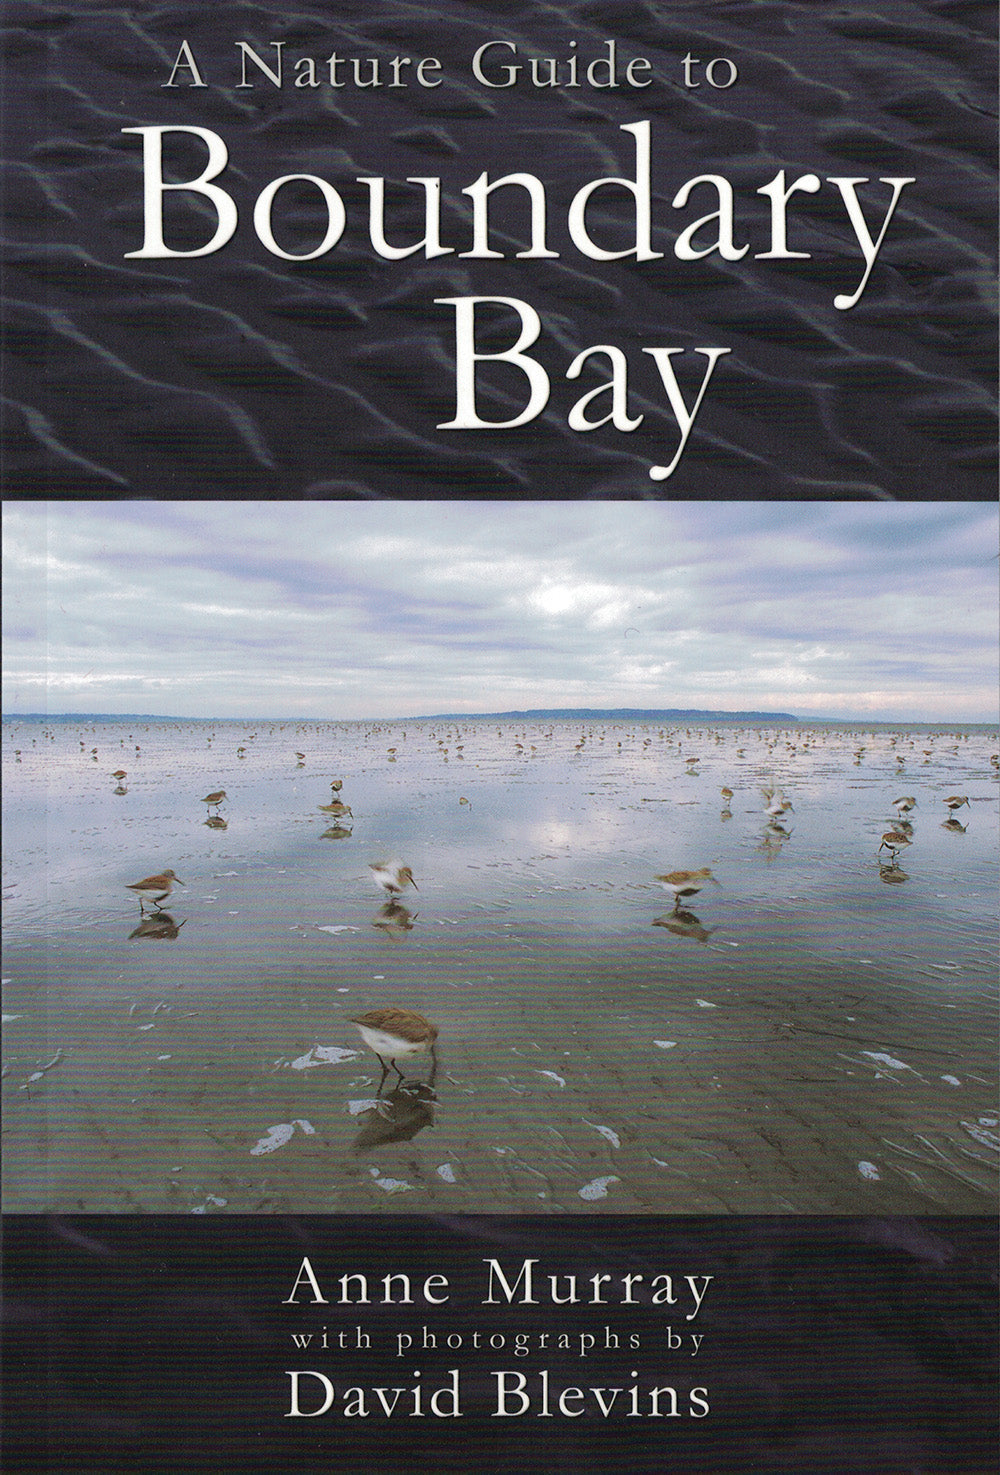 A Nature Guide To Boundary Bay By Anne Murray Hancock House Publishers